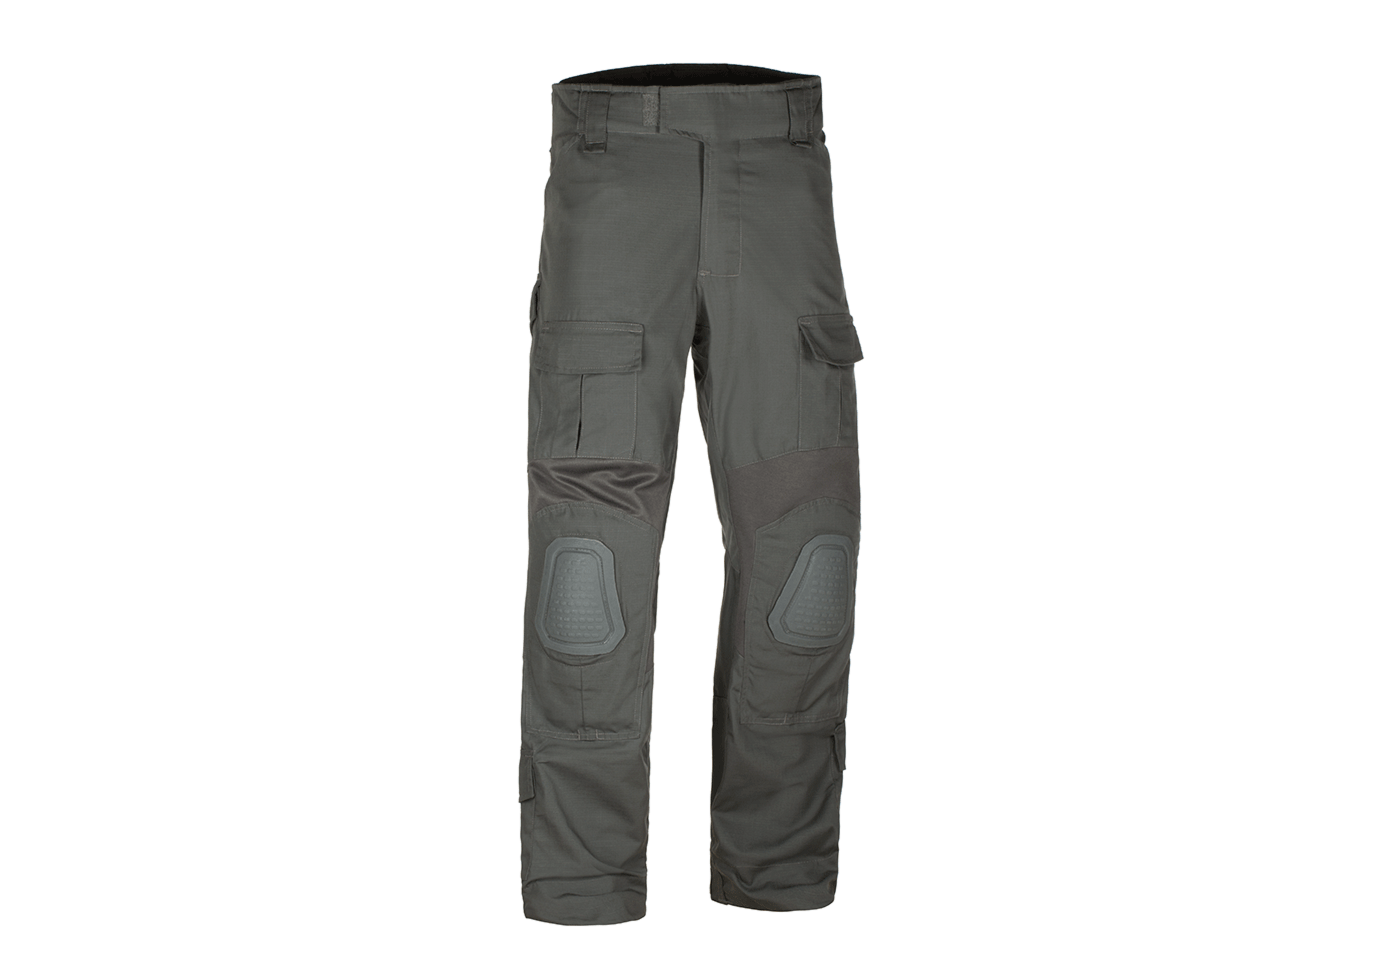 Invader Gear Predator Combat Pant Wolf Grey